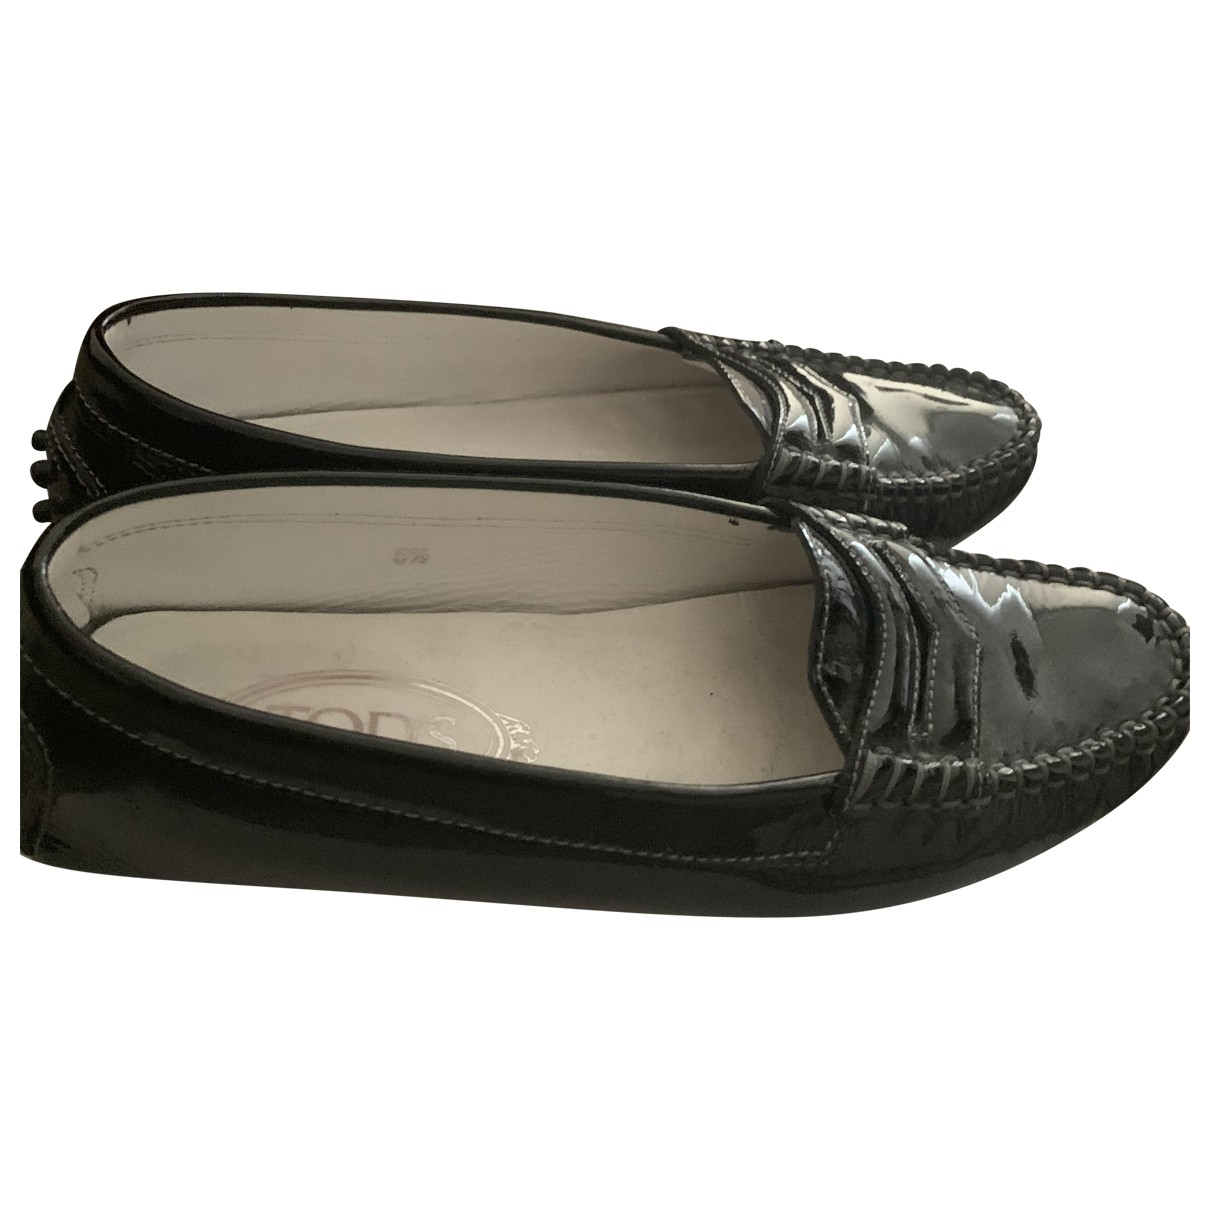 Tod's Gommino Black Patent leather Flats for Women 6.5 US